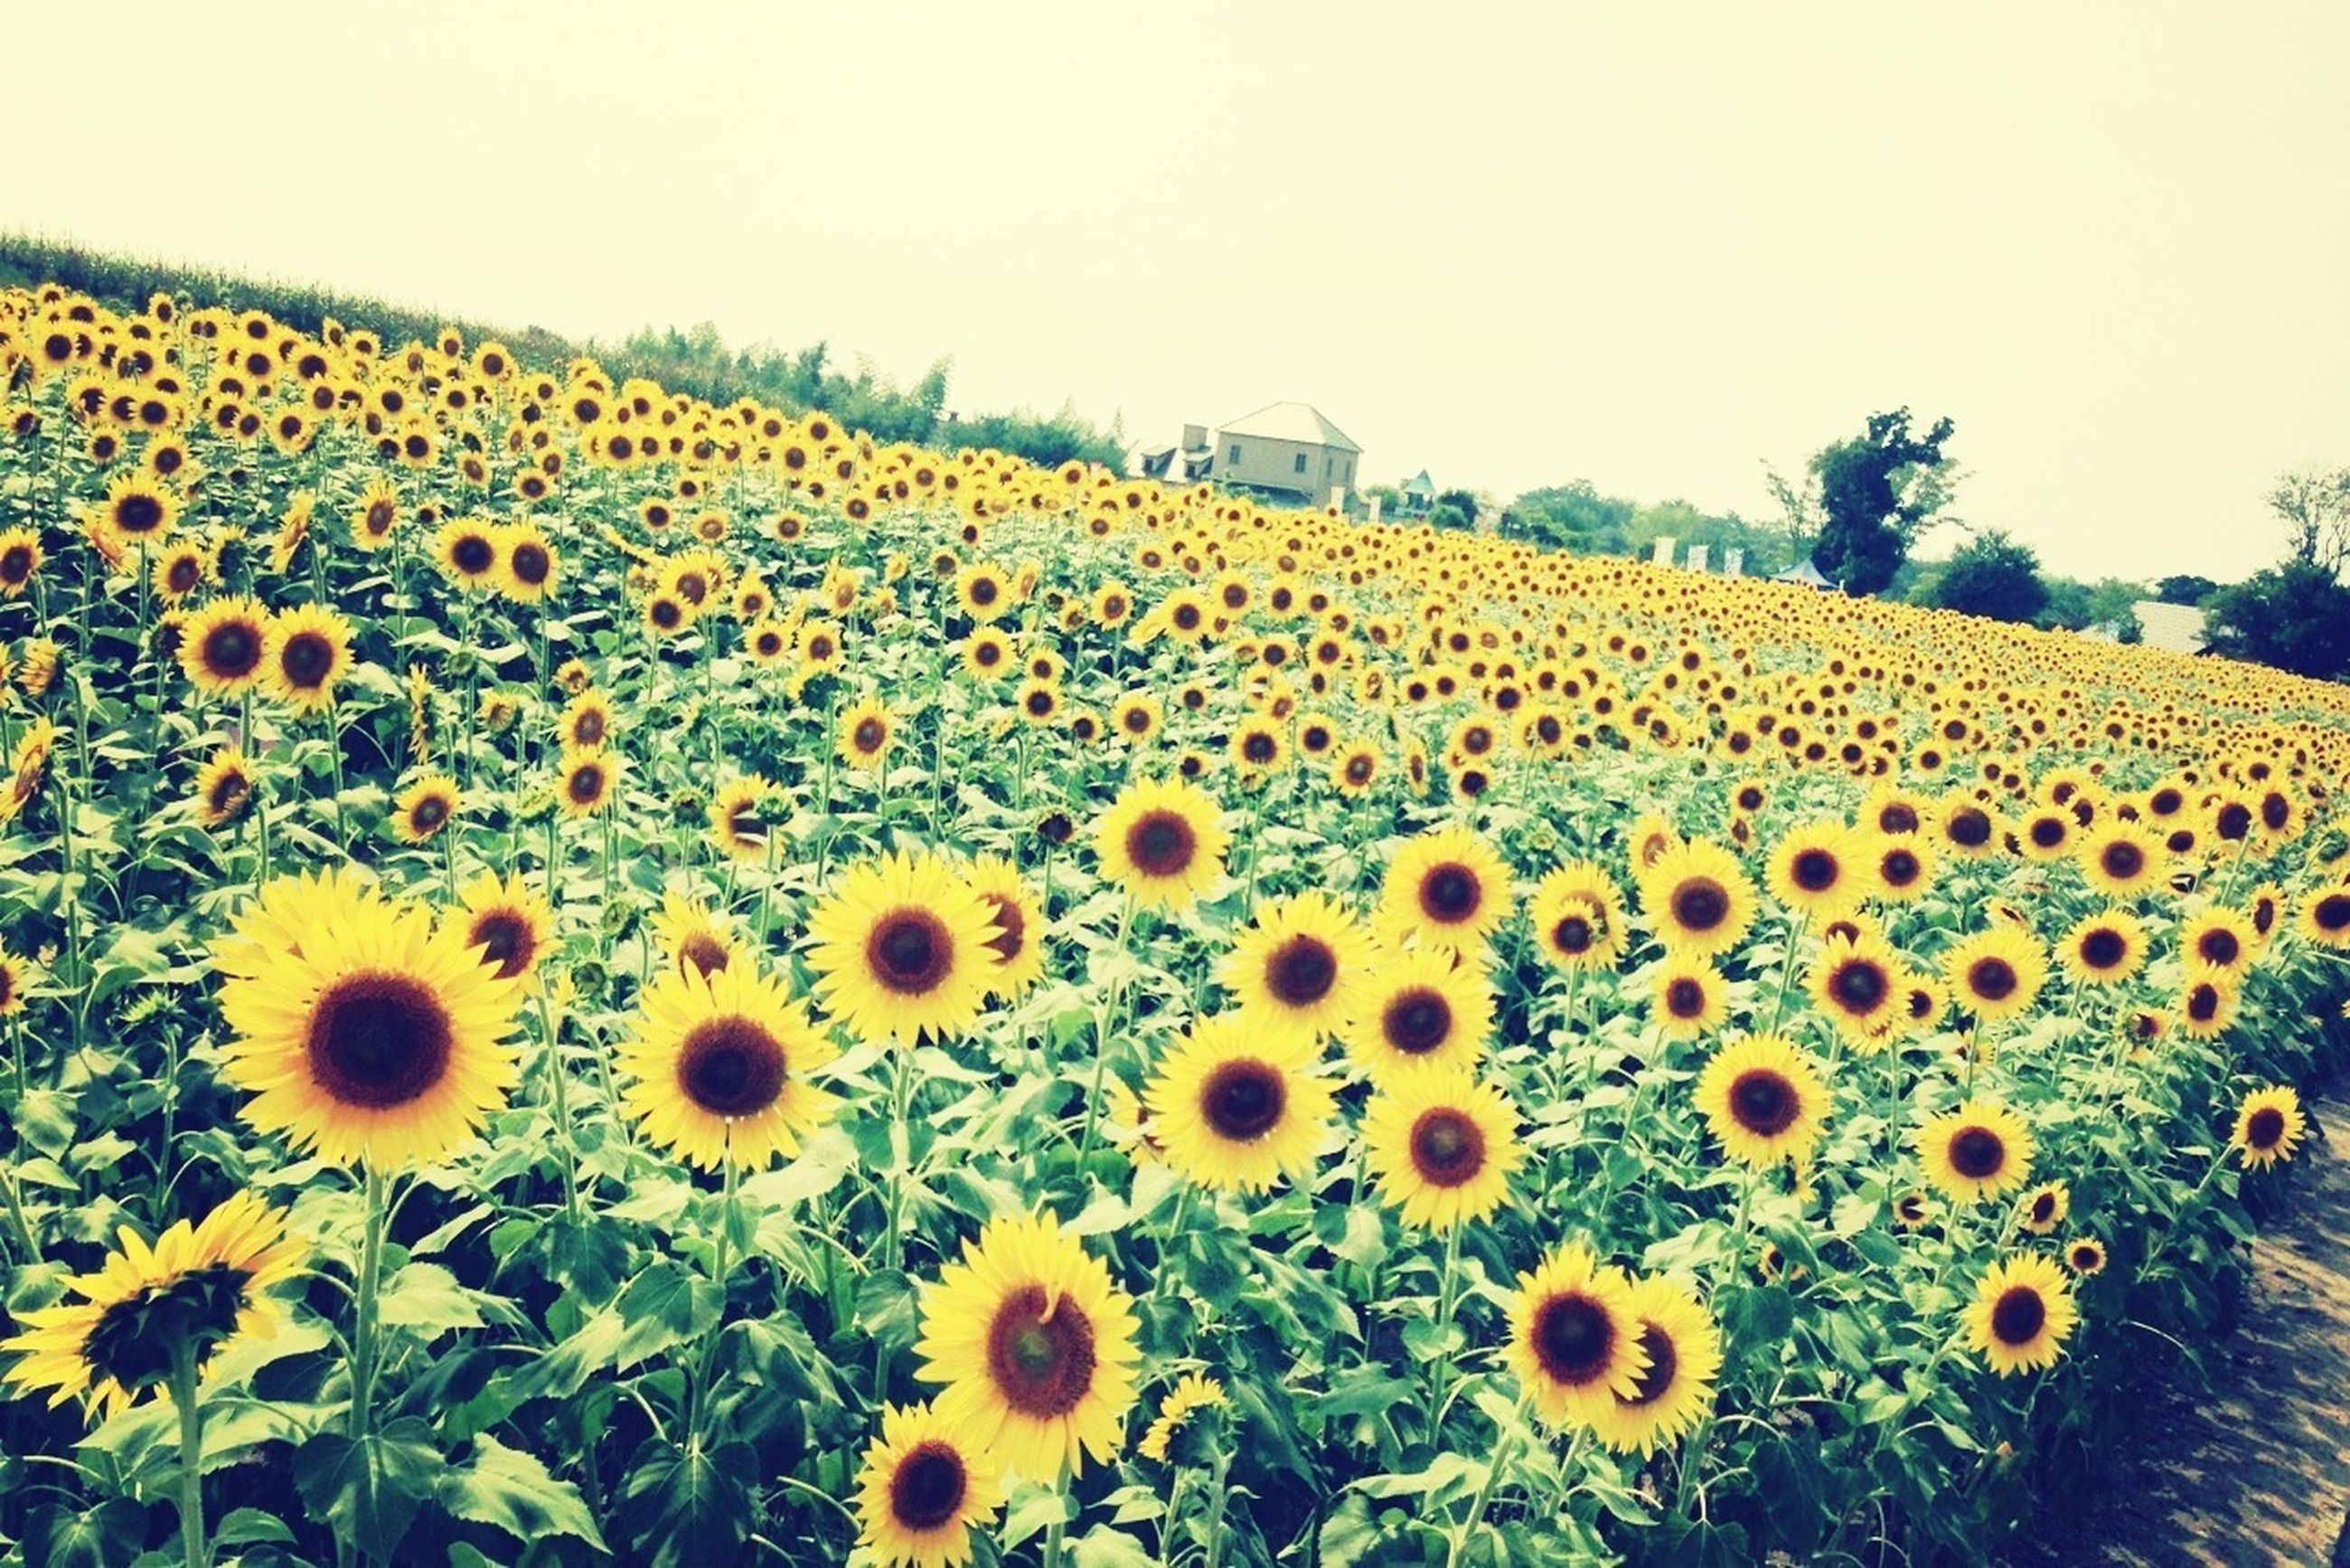 flower, yellow, sunflower, freshness, growth, fragility, beauty in nature, field, rural scene, flower head, agriculture, nature, plant, clear sky, blooming, petal, abundance, farm, tranquil scene, landscape